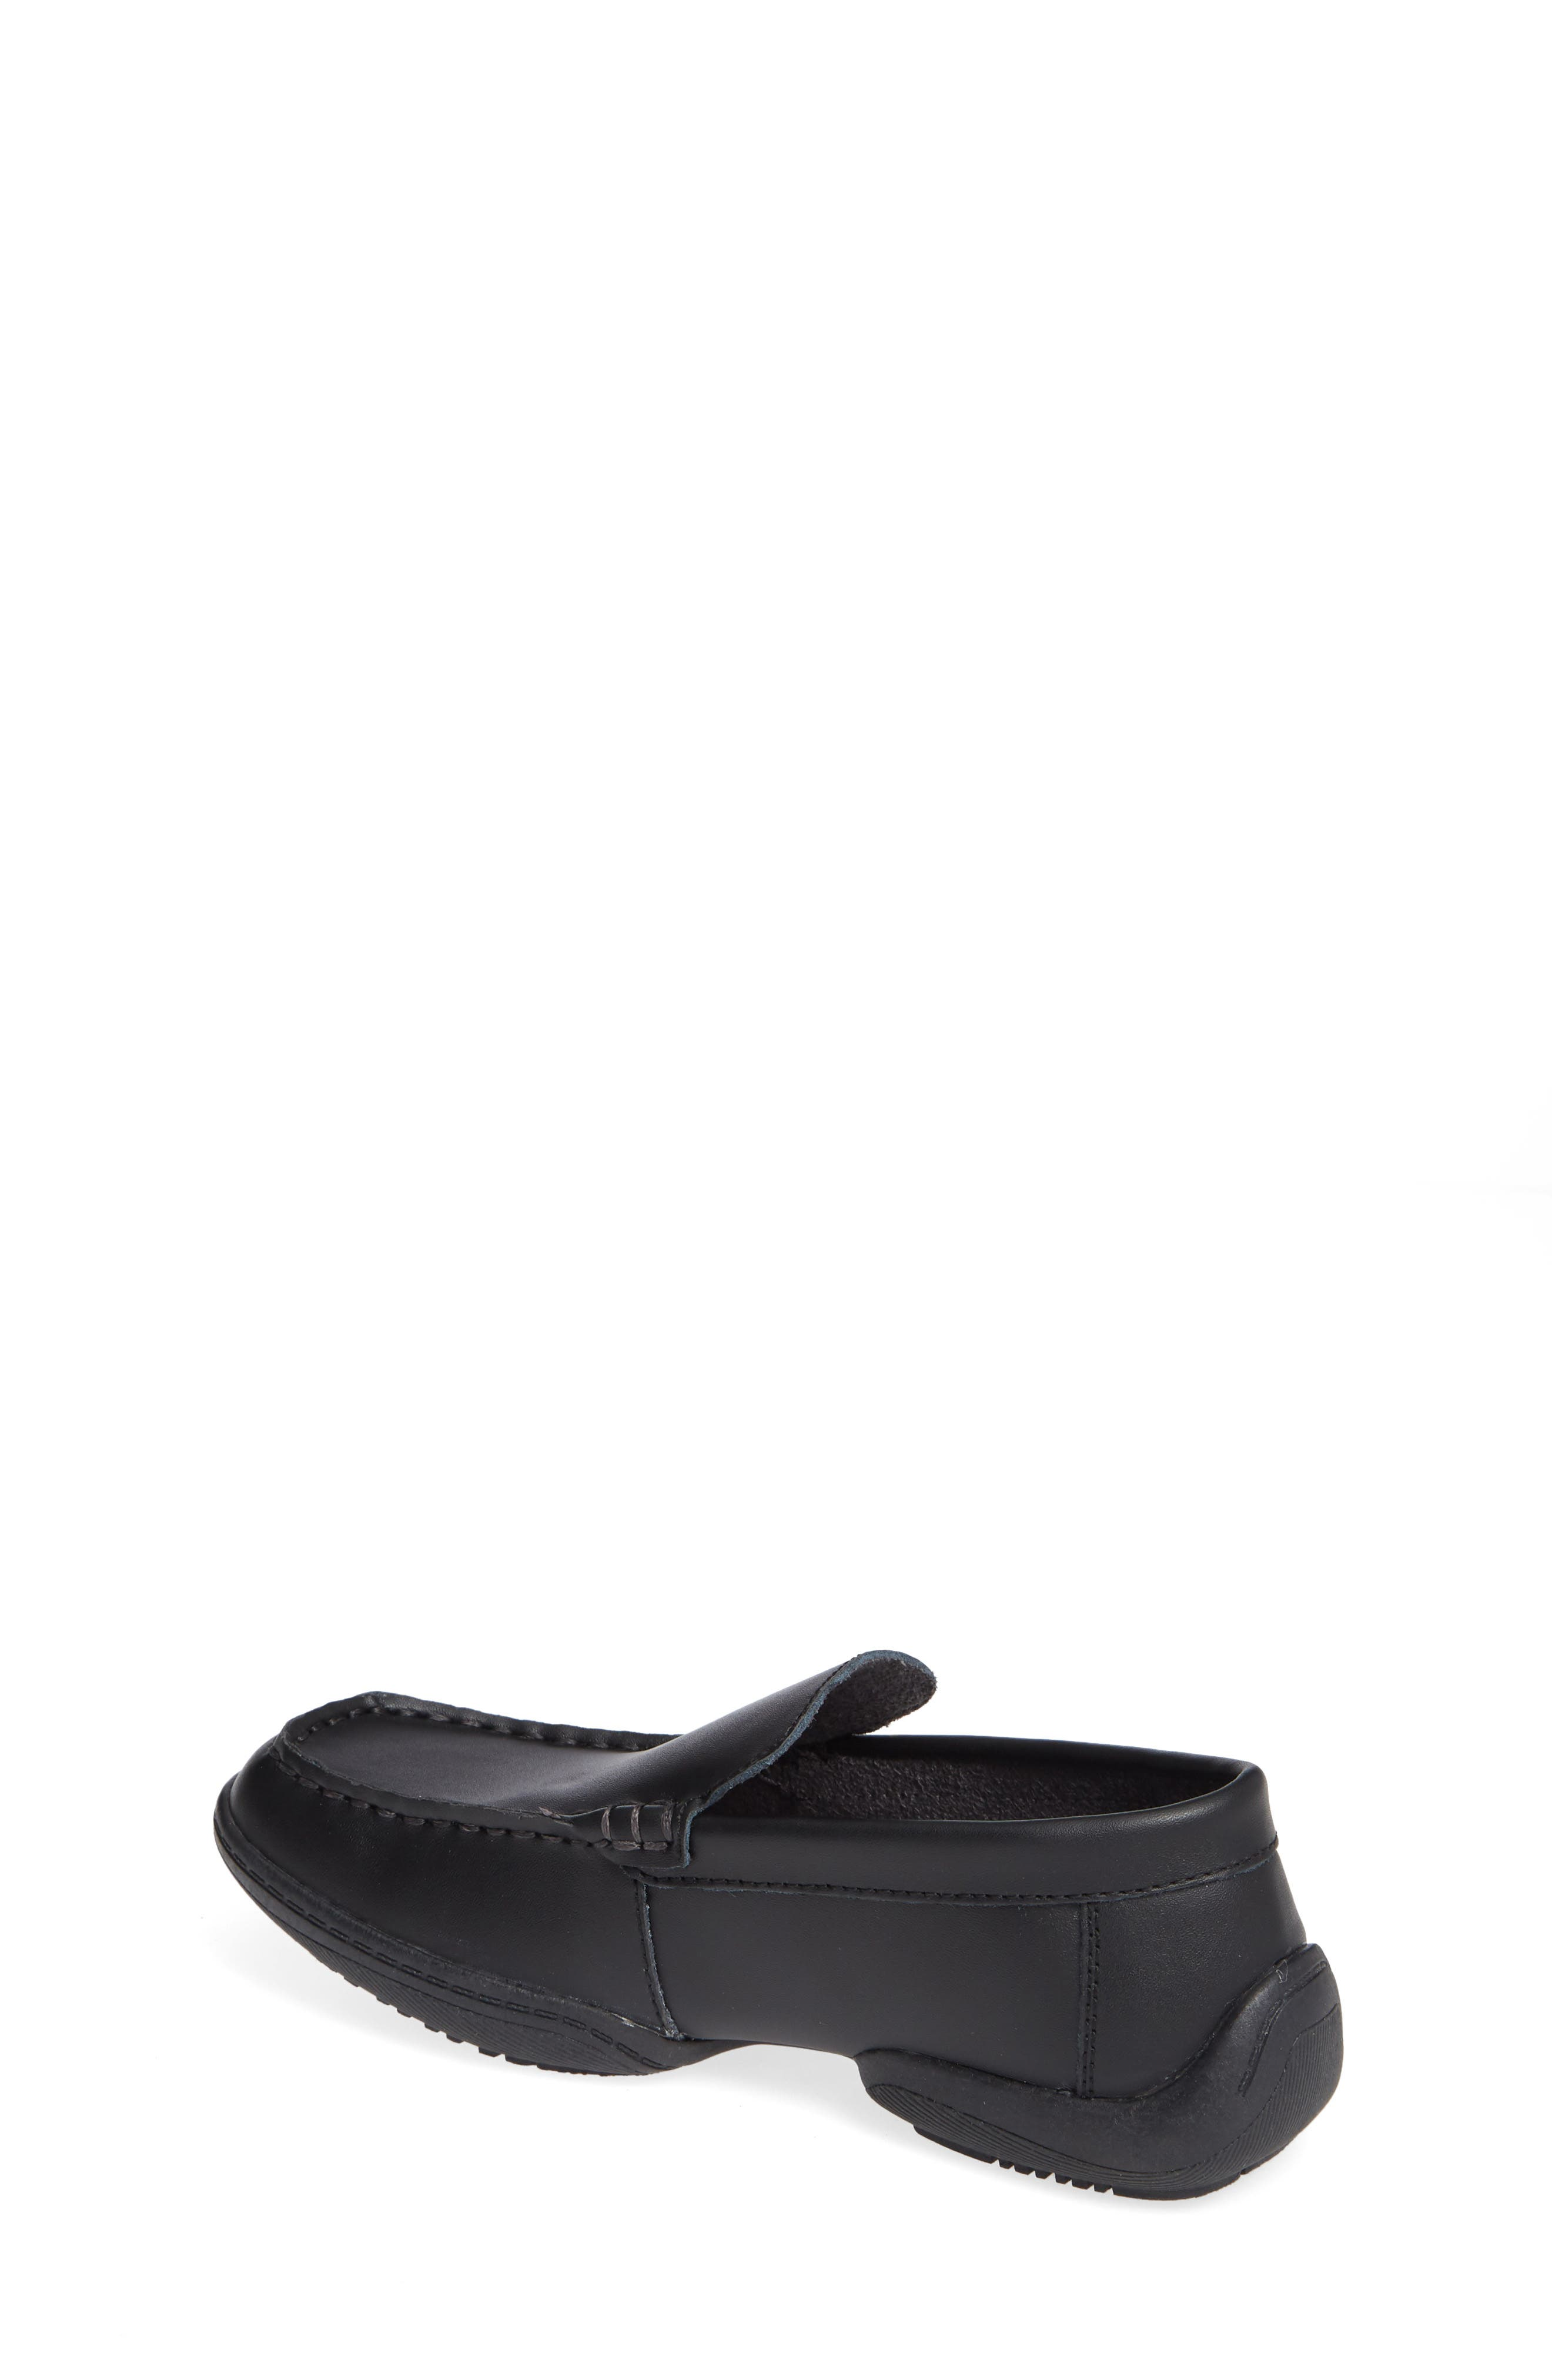 REACTION KENNETH COLE, Driving Dime Moccasin, Alternate thumbnail 2, color, DARK BLACK LEATHER